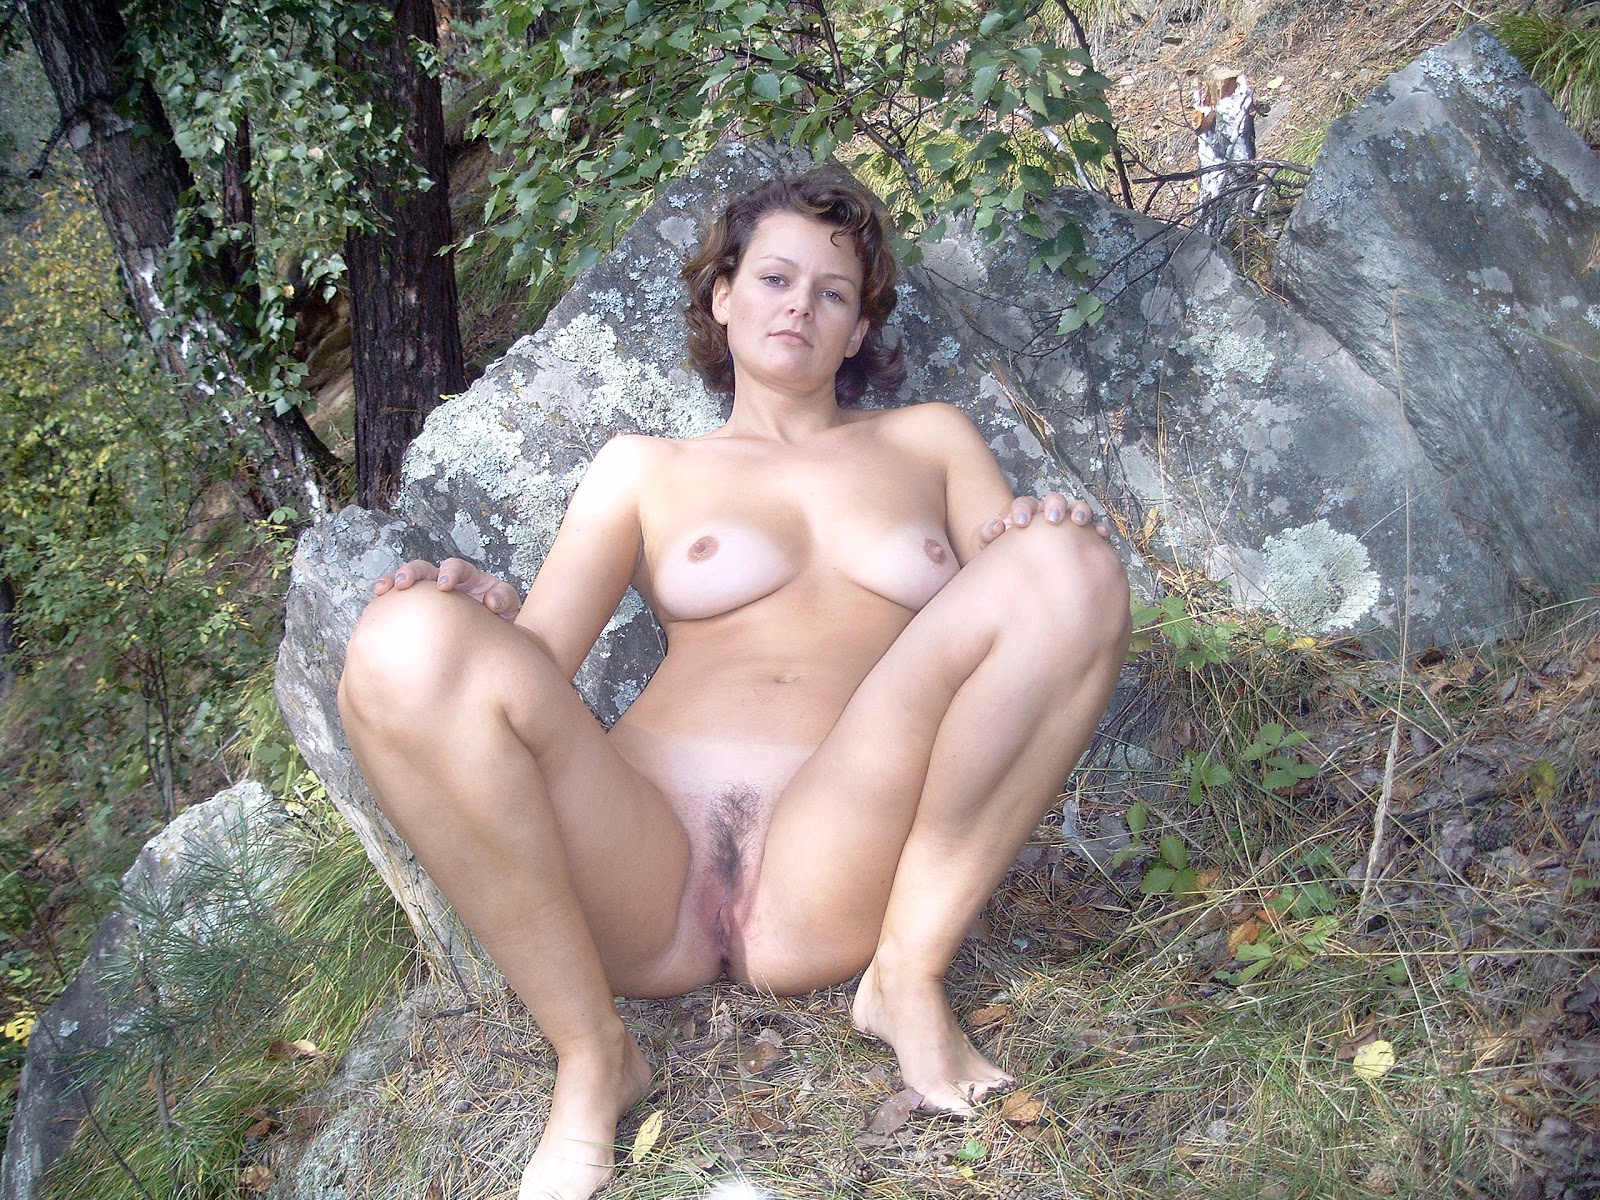 mature photos nude jpg 1500x1000